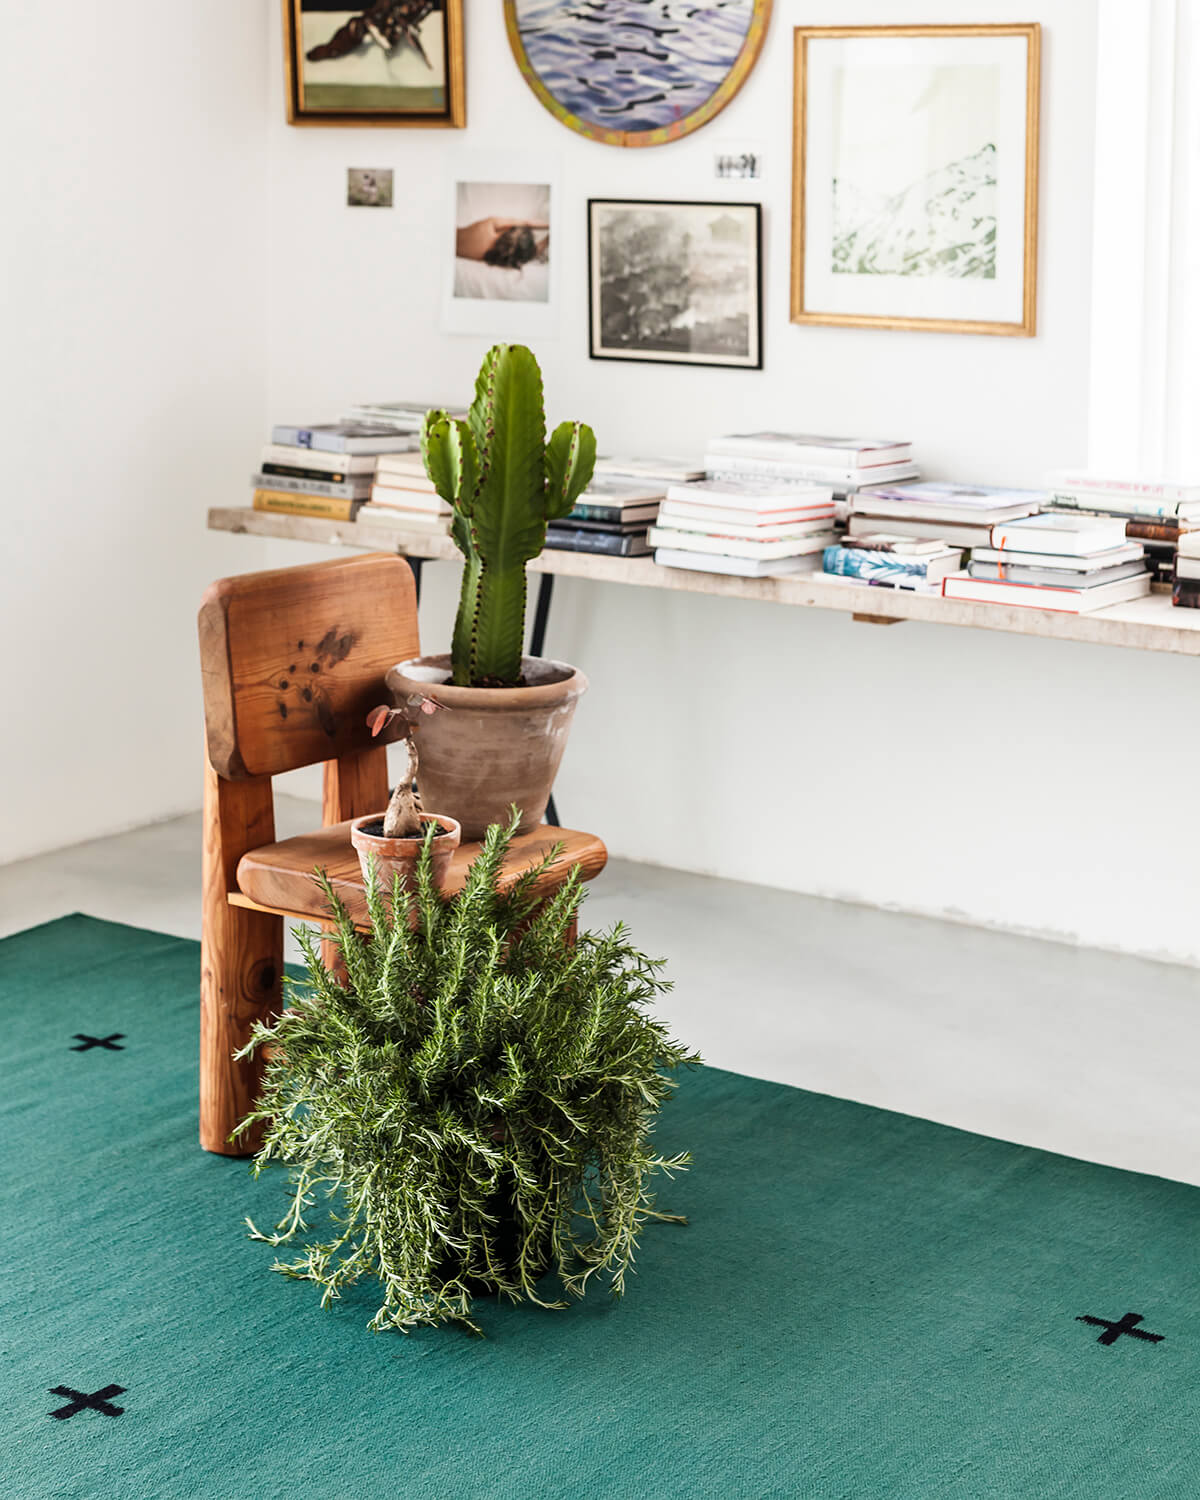 Green Plus rug displayed in a bright room with a potted fern and a cactus.